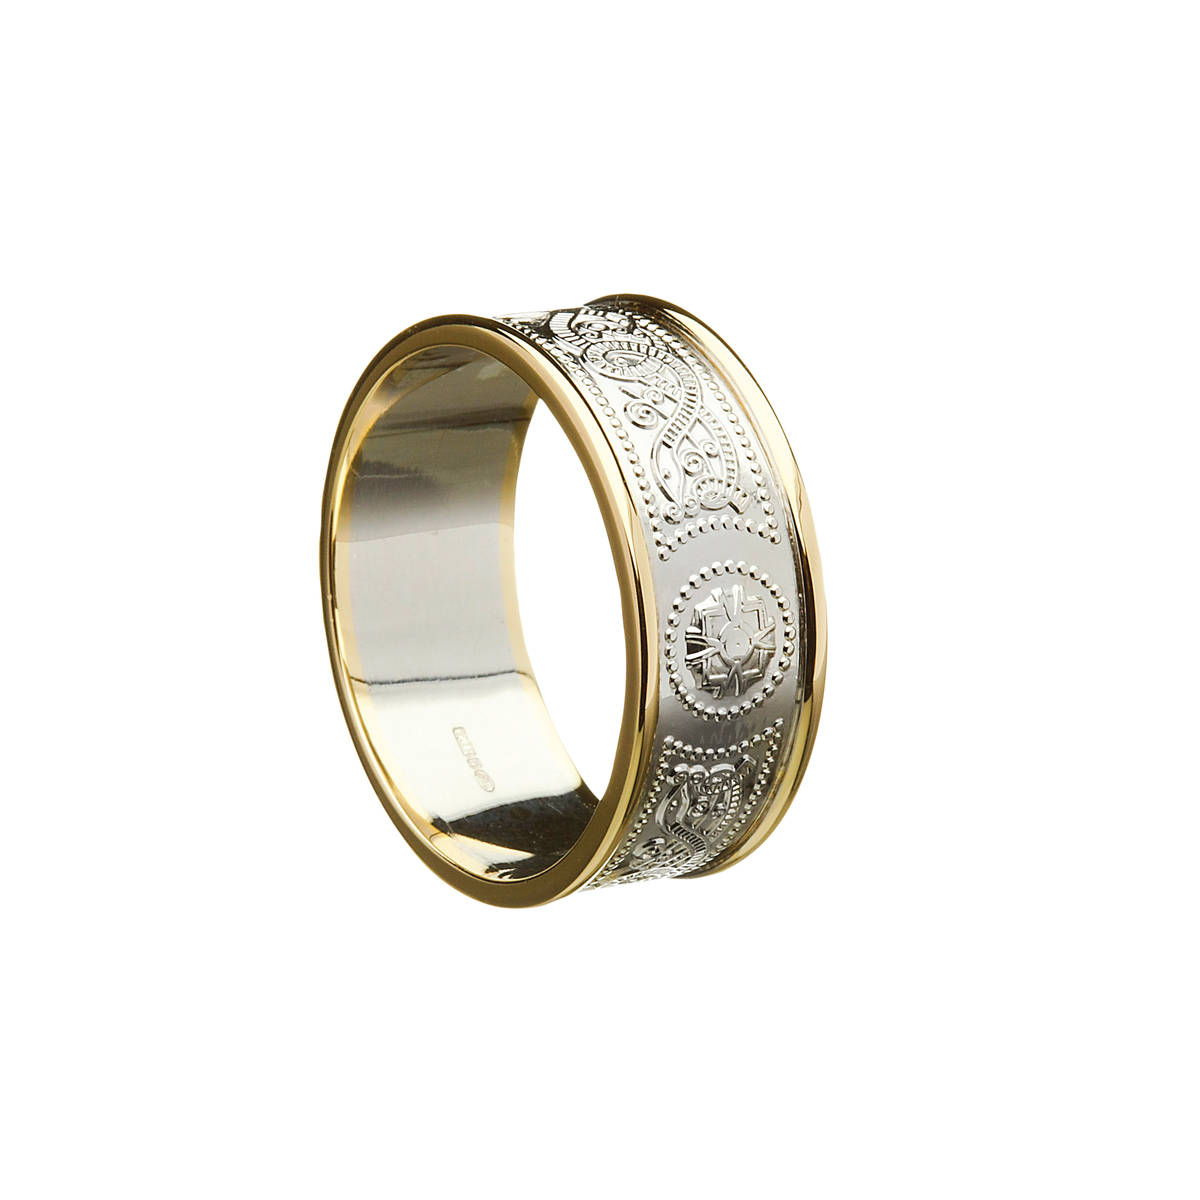 14 carat white man's Arda chalice inspired wedding ring with light 14 carat yellow rims9.2mm wideOne of my favourite designs.